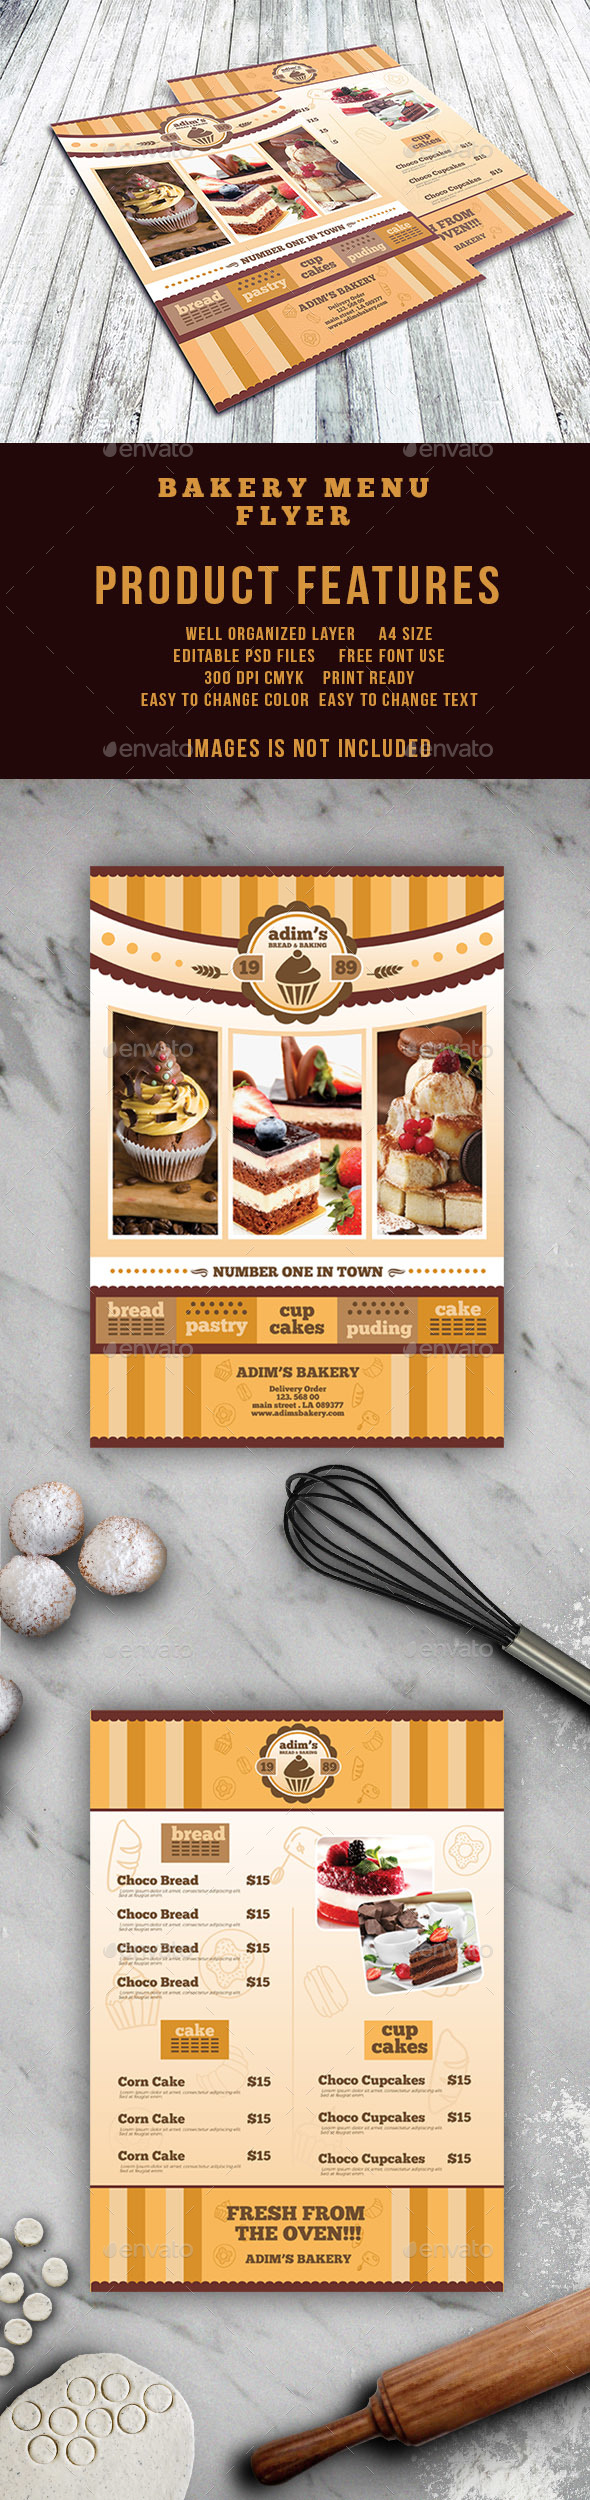 Bakery menu flyer template by adimasen graphicriver bakery menu flyer template food menus print templates altavistaventures Image collections